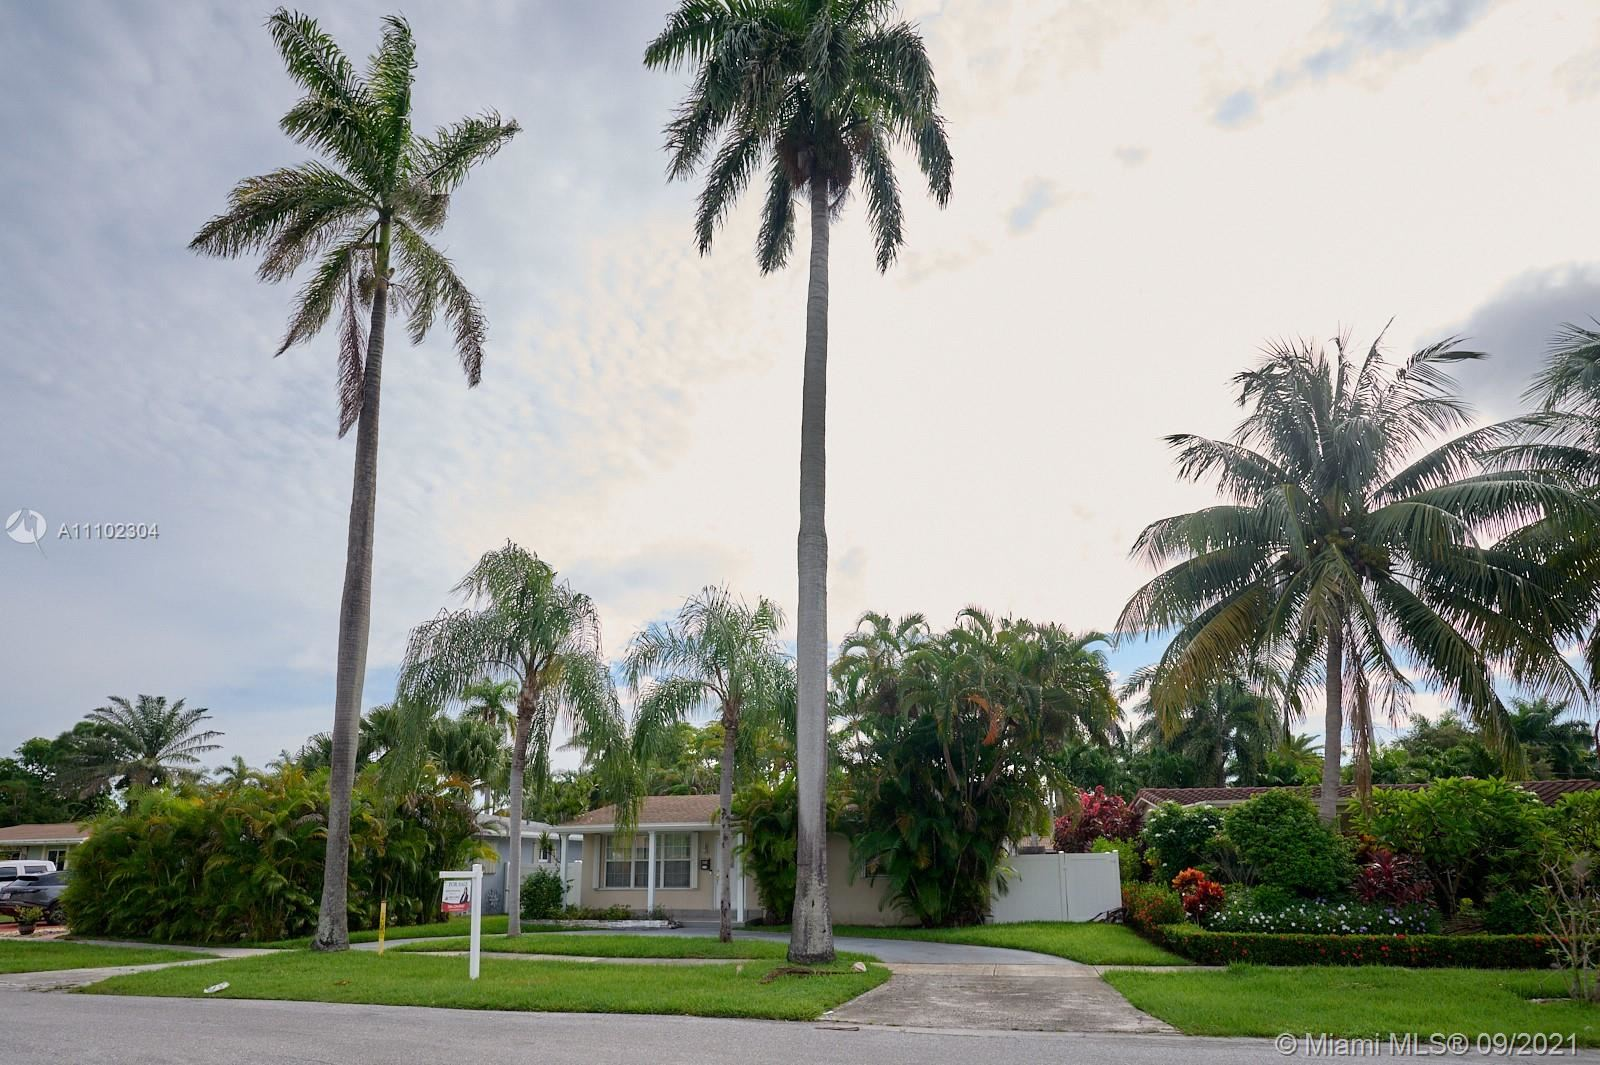 Photo of 1011 N 14th Ave, Hollywood, FL 33020 (MLS # A11102304)